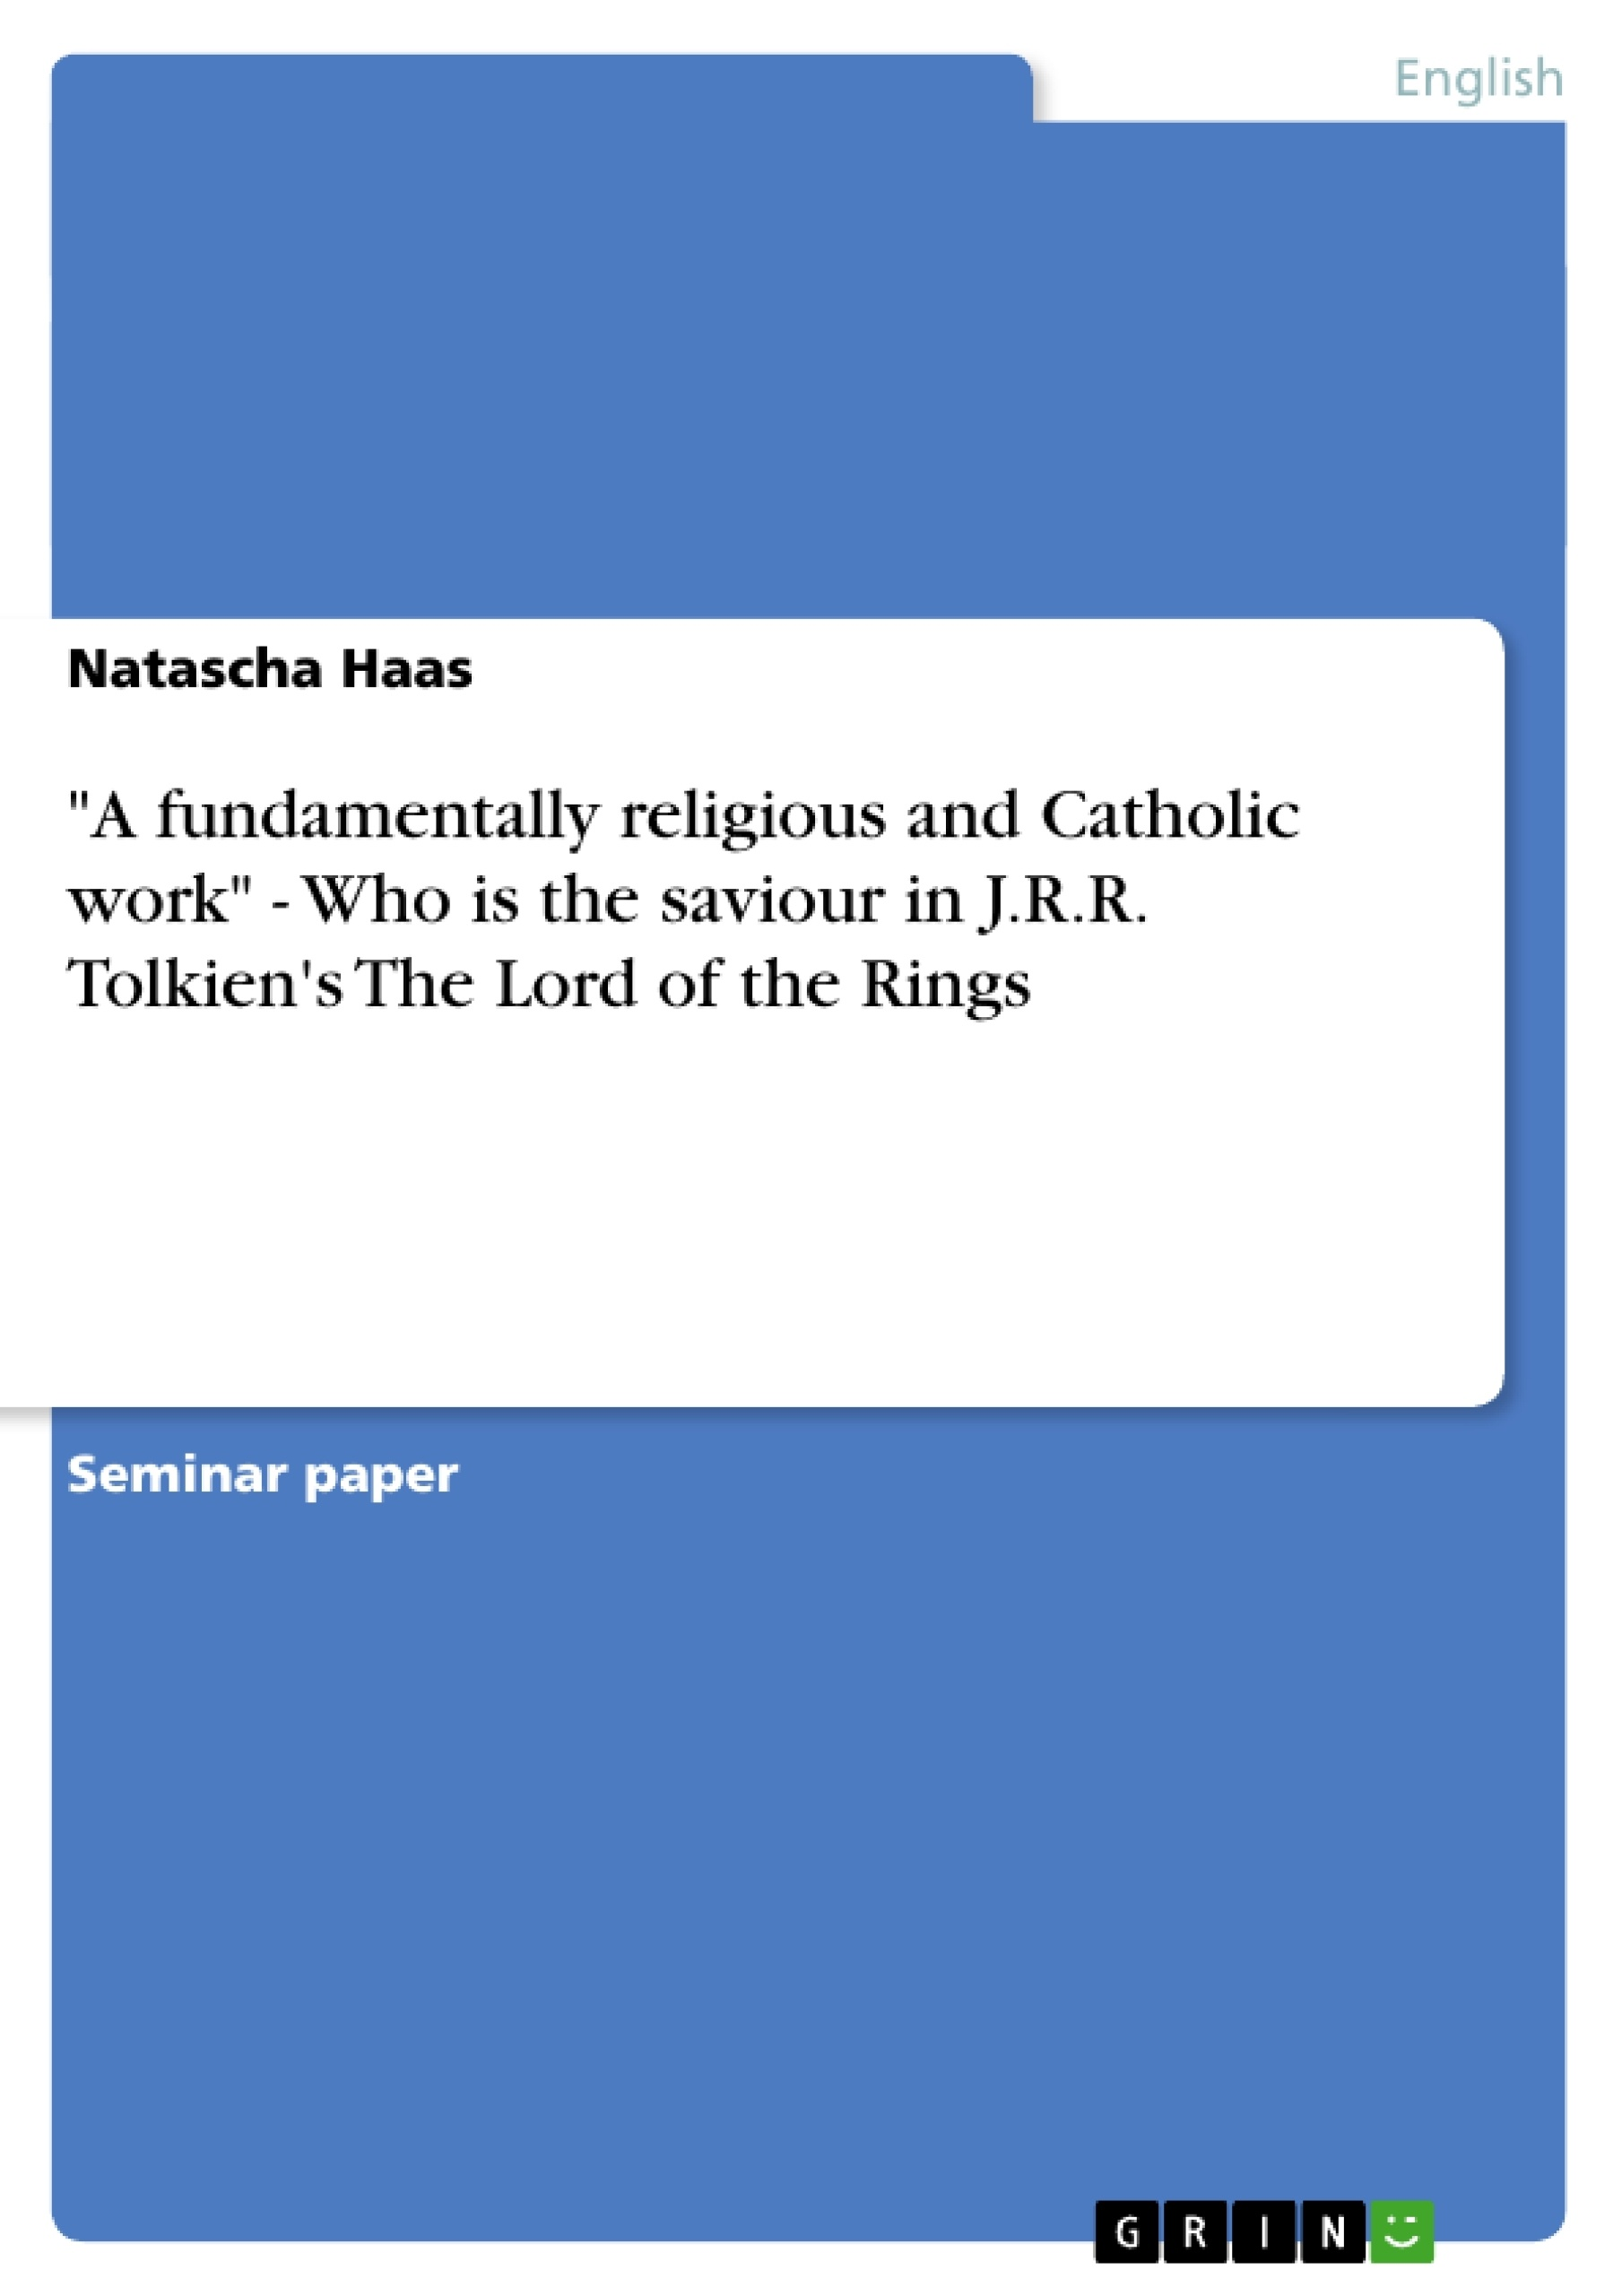 """Title: """"A fundamentally religious and Catholic work"""" - Who is the saviour in J.R.R. Tolkien's The Lord of the Rings"""